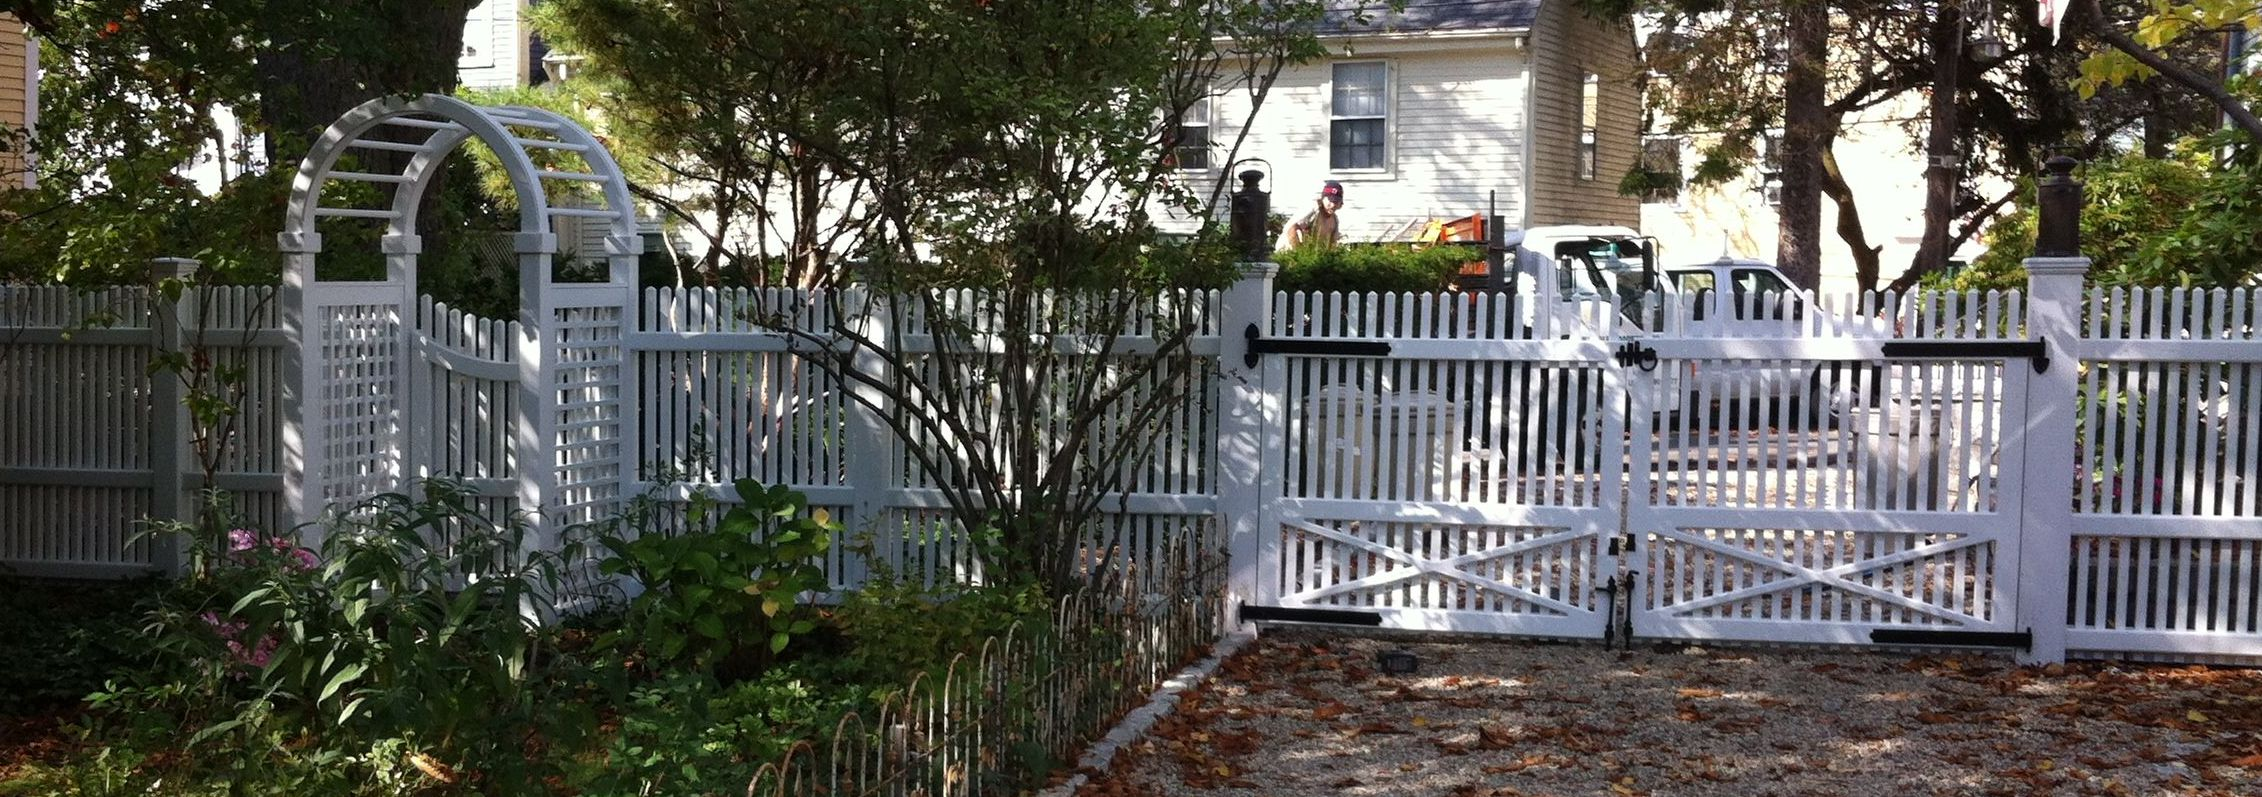 963 - 478144 - Marblehead MA - Chestnut Hill Picket Fence